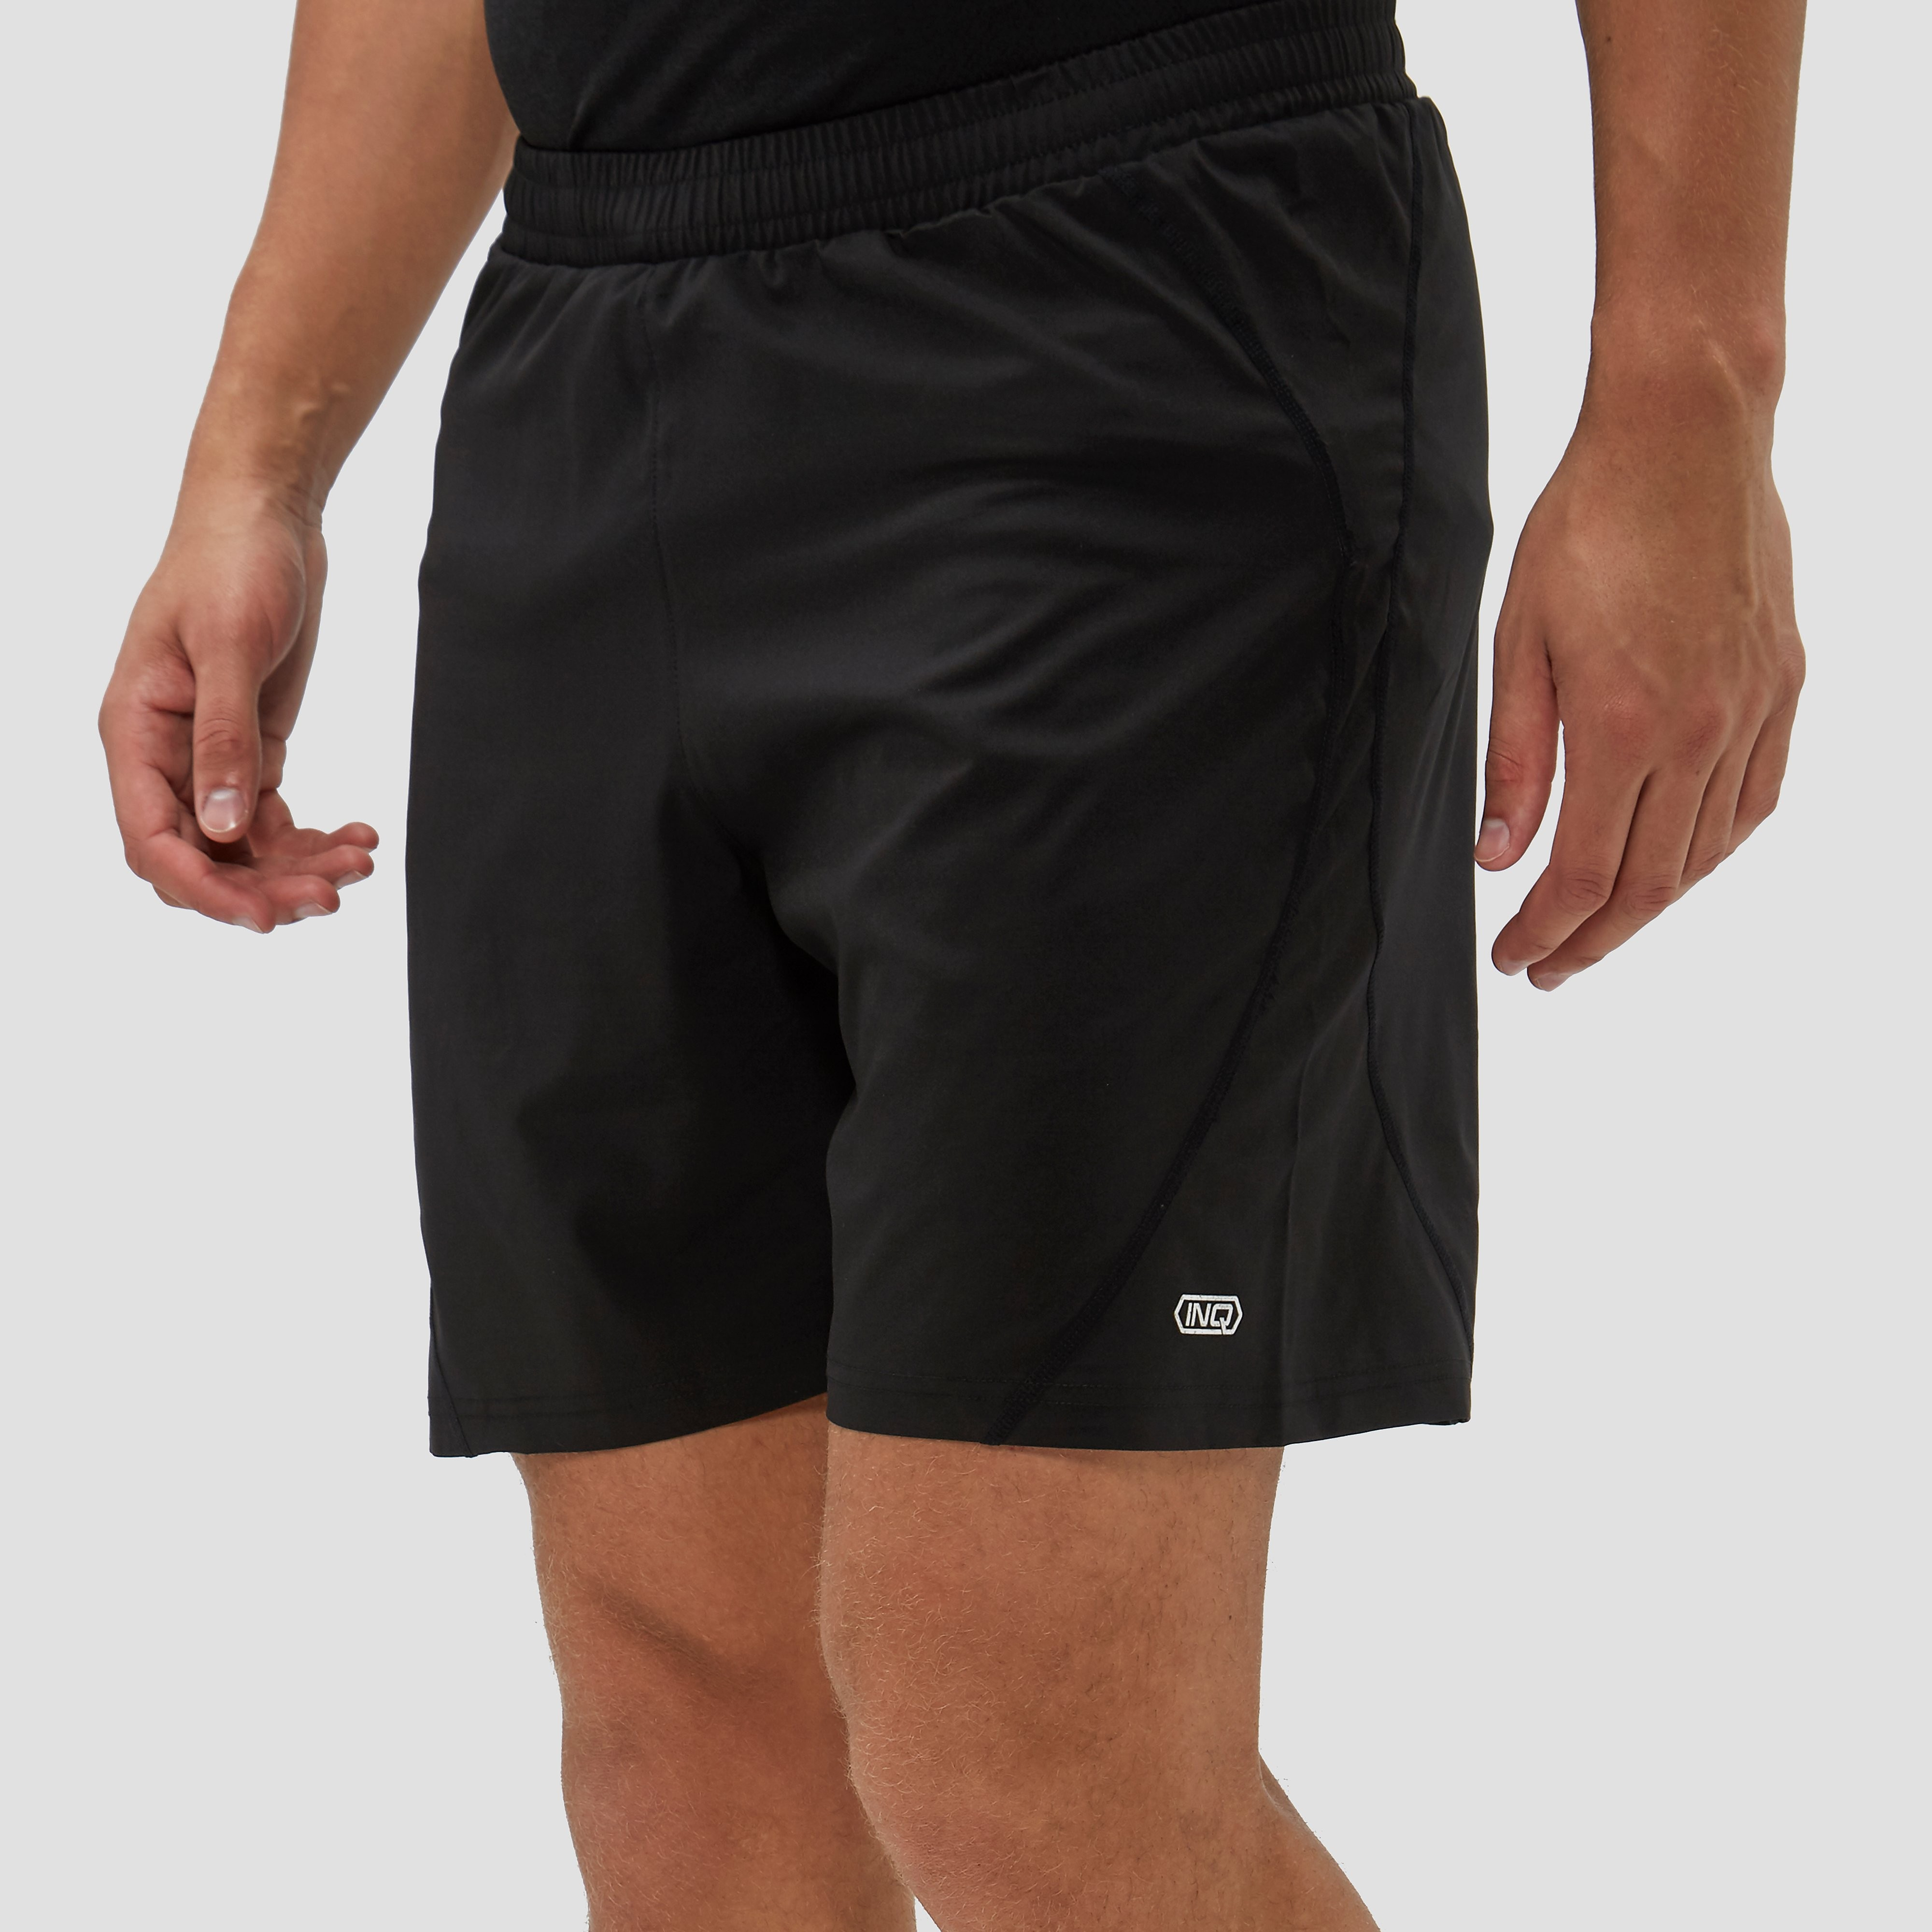 INQ ATLAS BASIC WOVEN SHORT